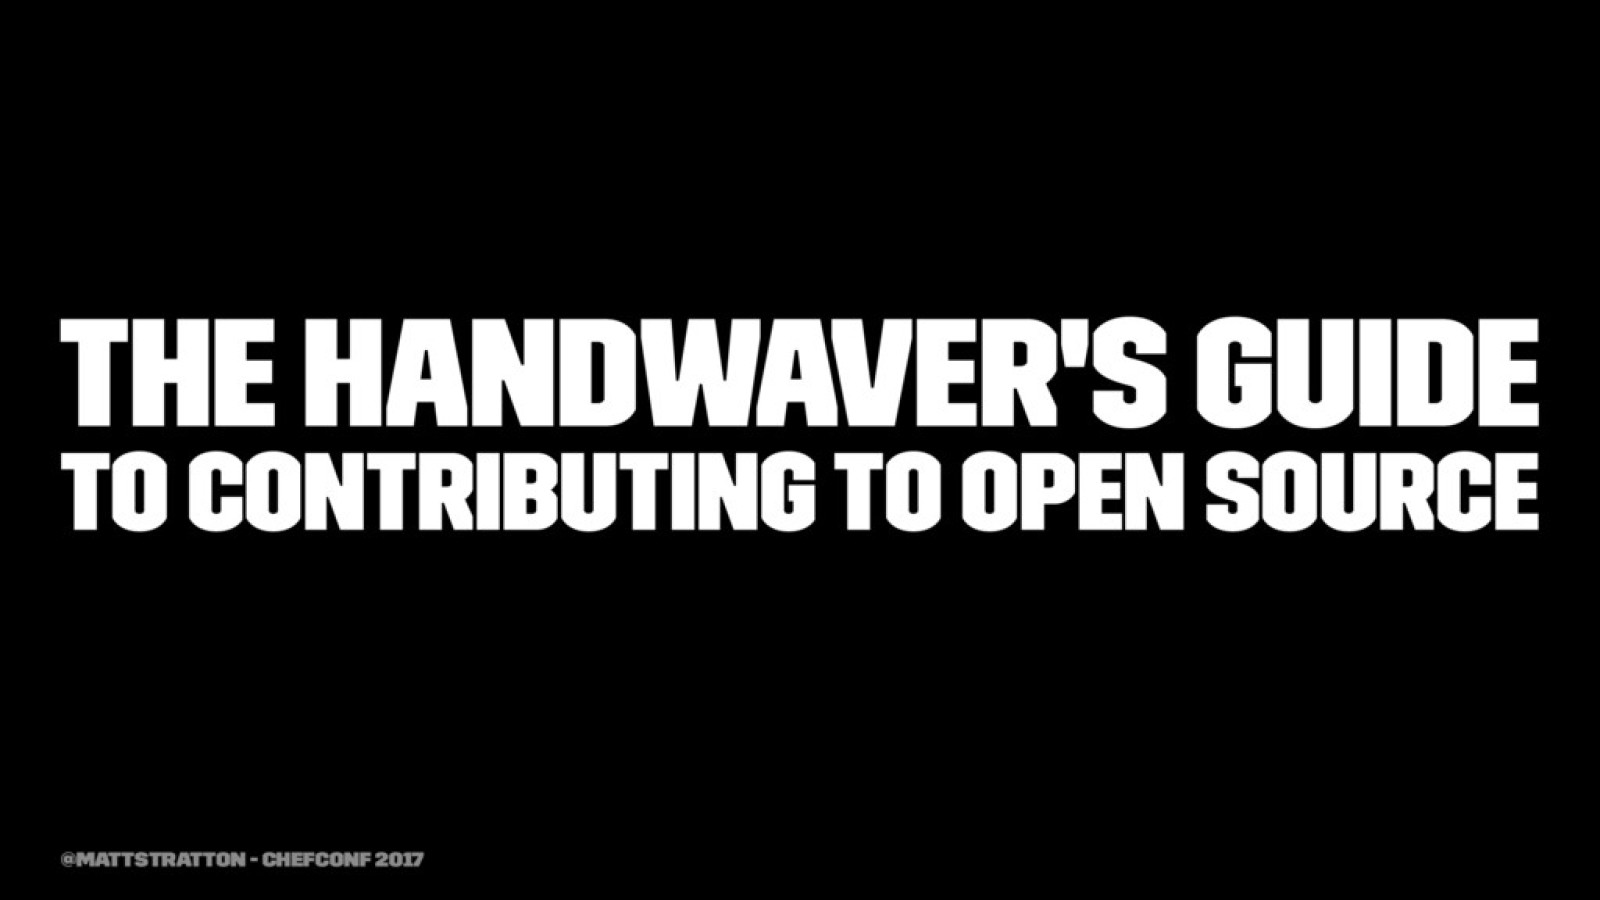 The Handwaver's Guide to Contributing To Open Source